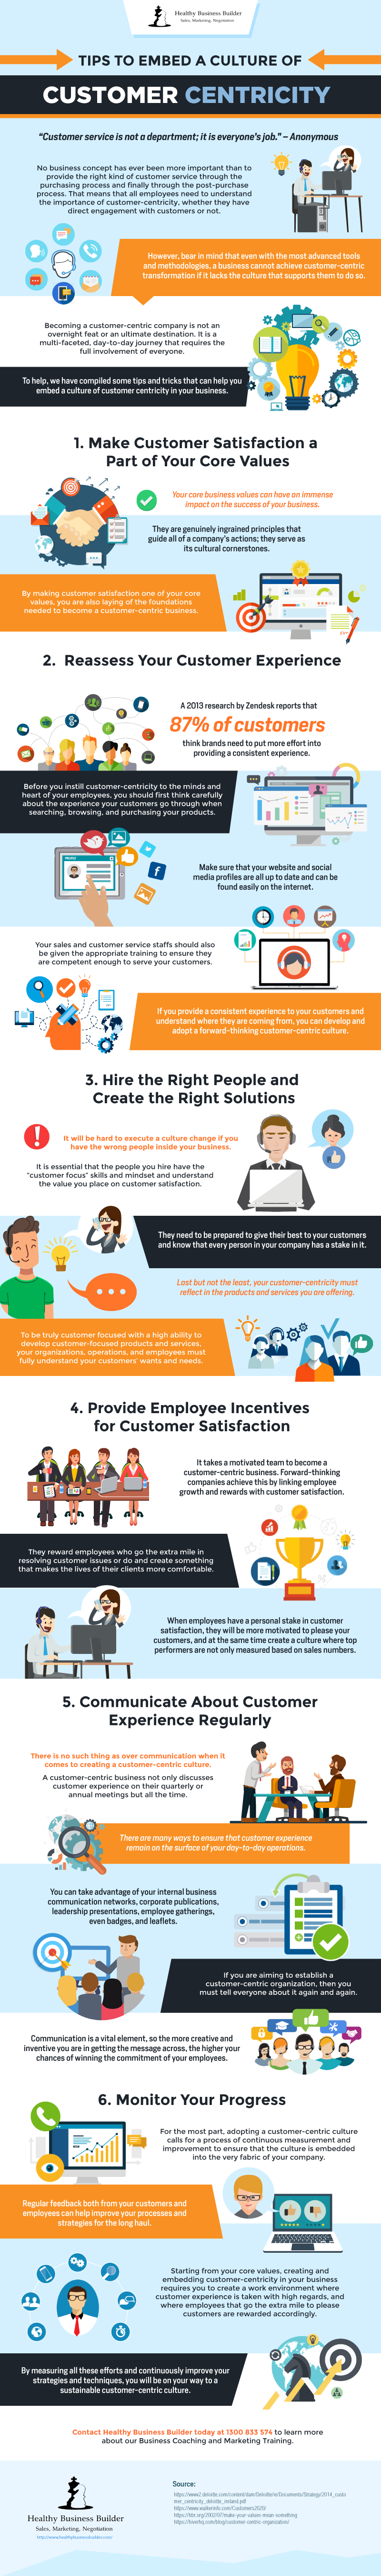 Tips to Embed a Culture of Customer Centricity